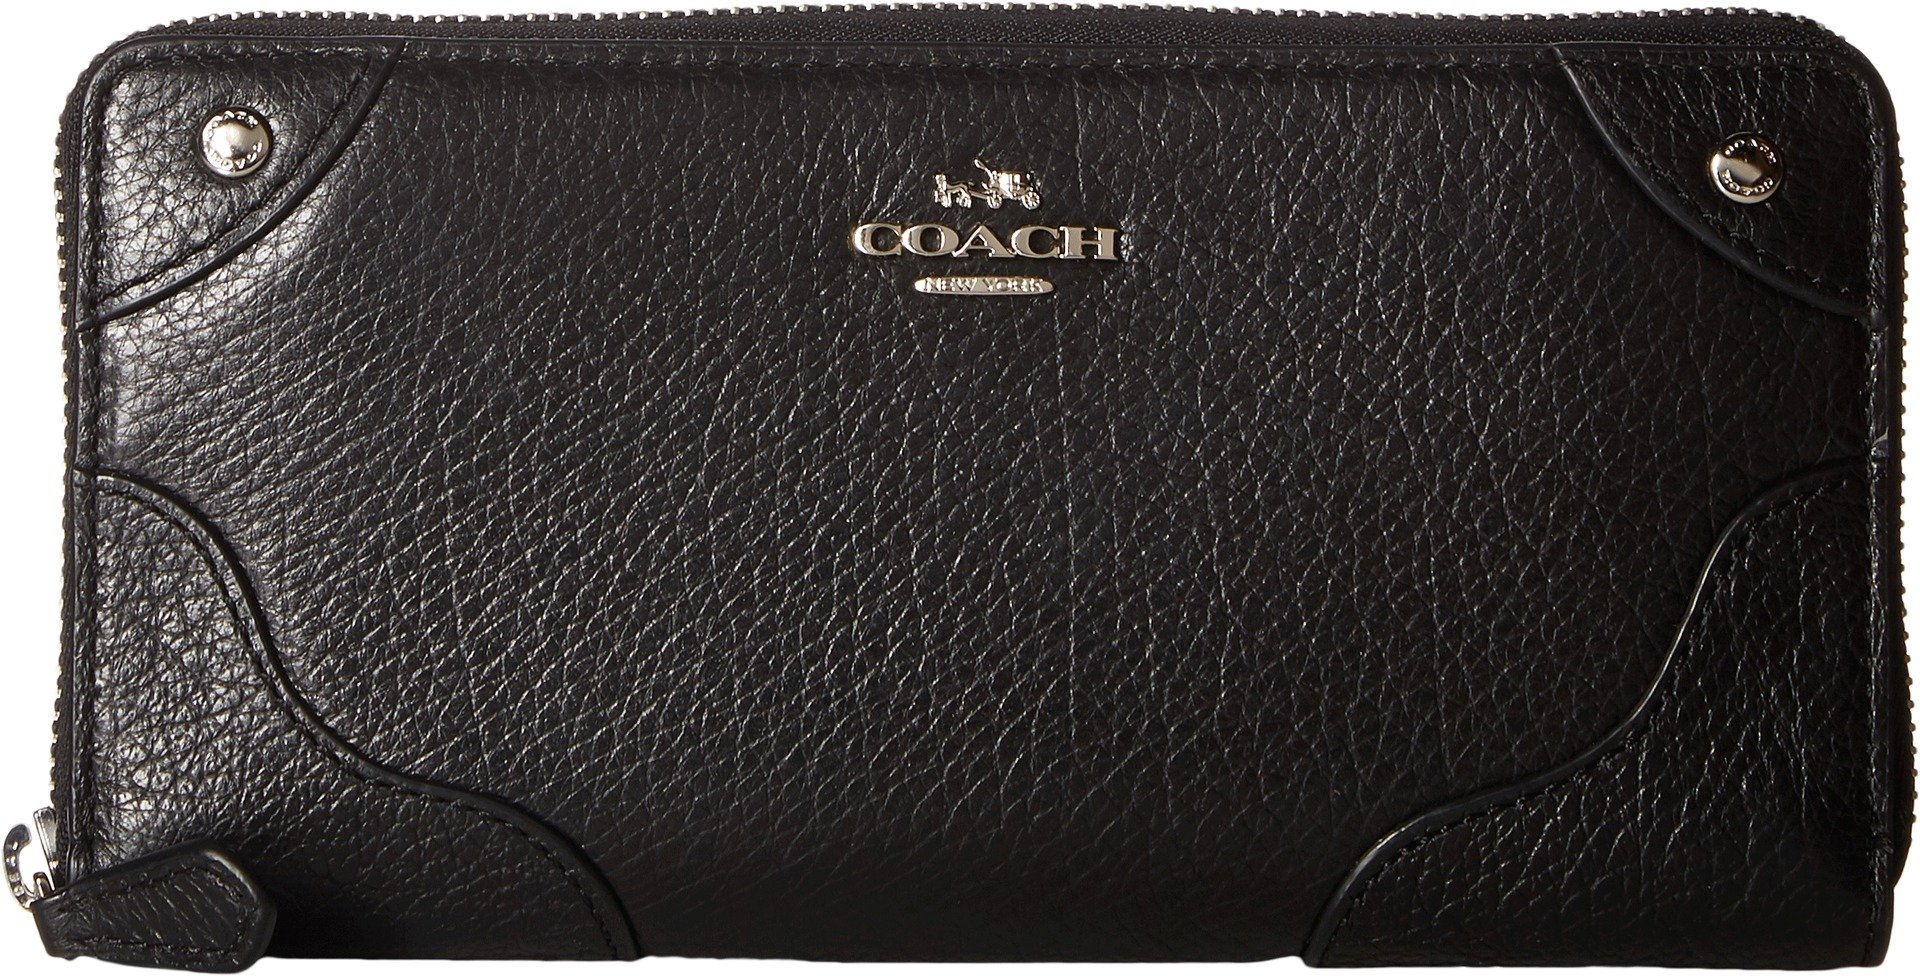 COACH Women's Grain Leather Mickie Wristlet Chalk One Size